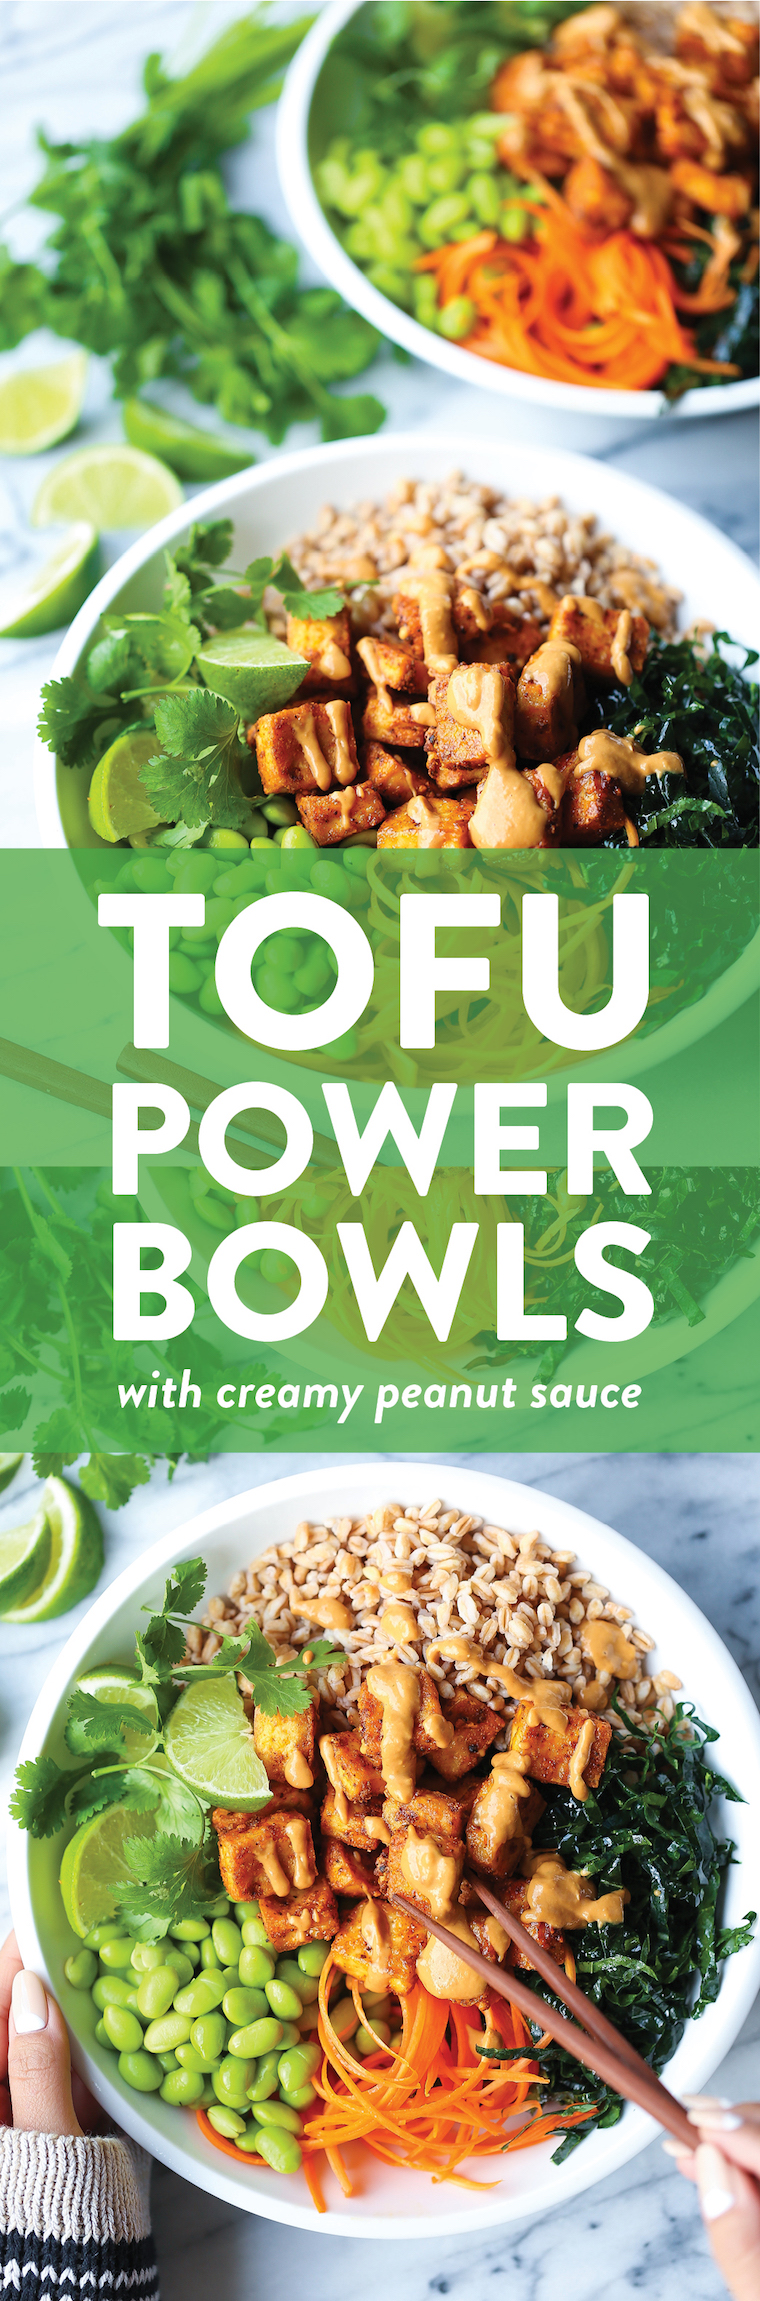 Tofu Power Bowls - Nutritious, flavor-packed veggie power bowls with crispy baked tofu, kale, edamame, carrots + THE BEST creamy peanut sauce of your life!